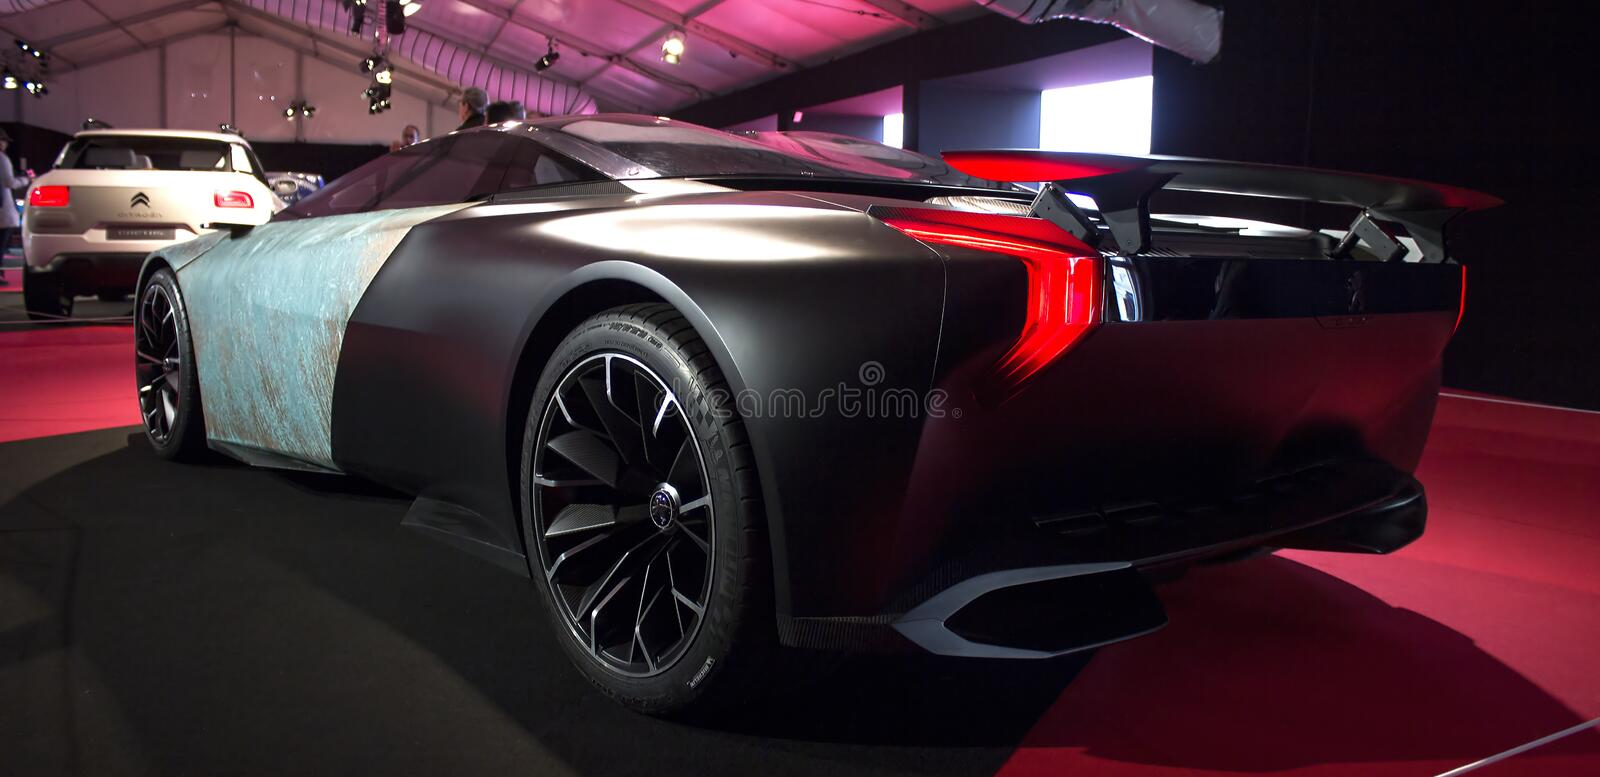 Peugeot Onyx back view royalty free stock image